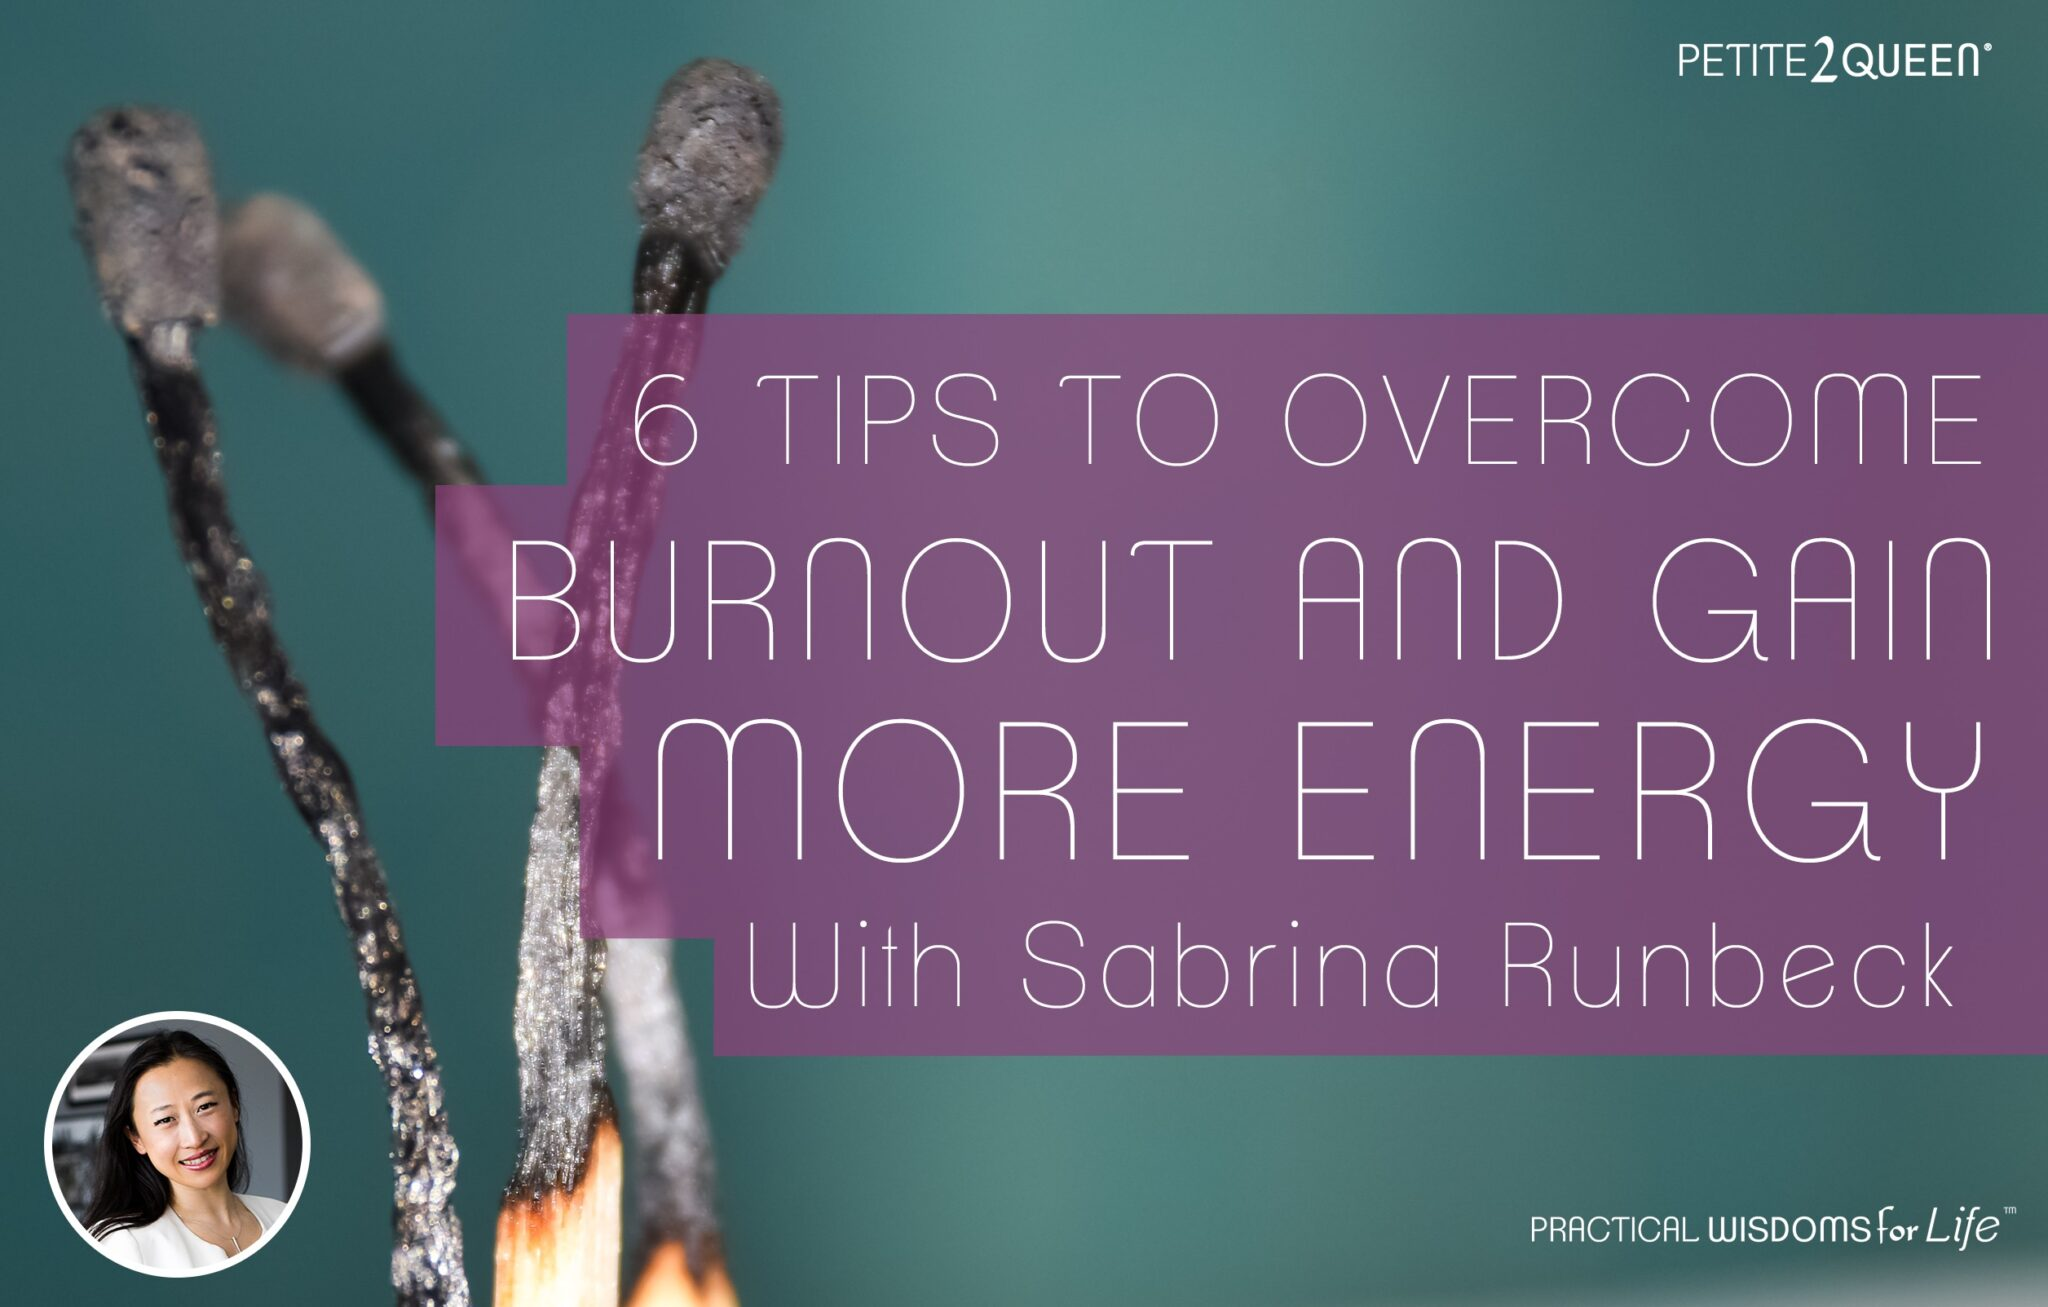 6 Tips to Overcome Burnout and Gain More Energy - Sabrina Runbeck